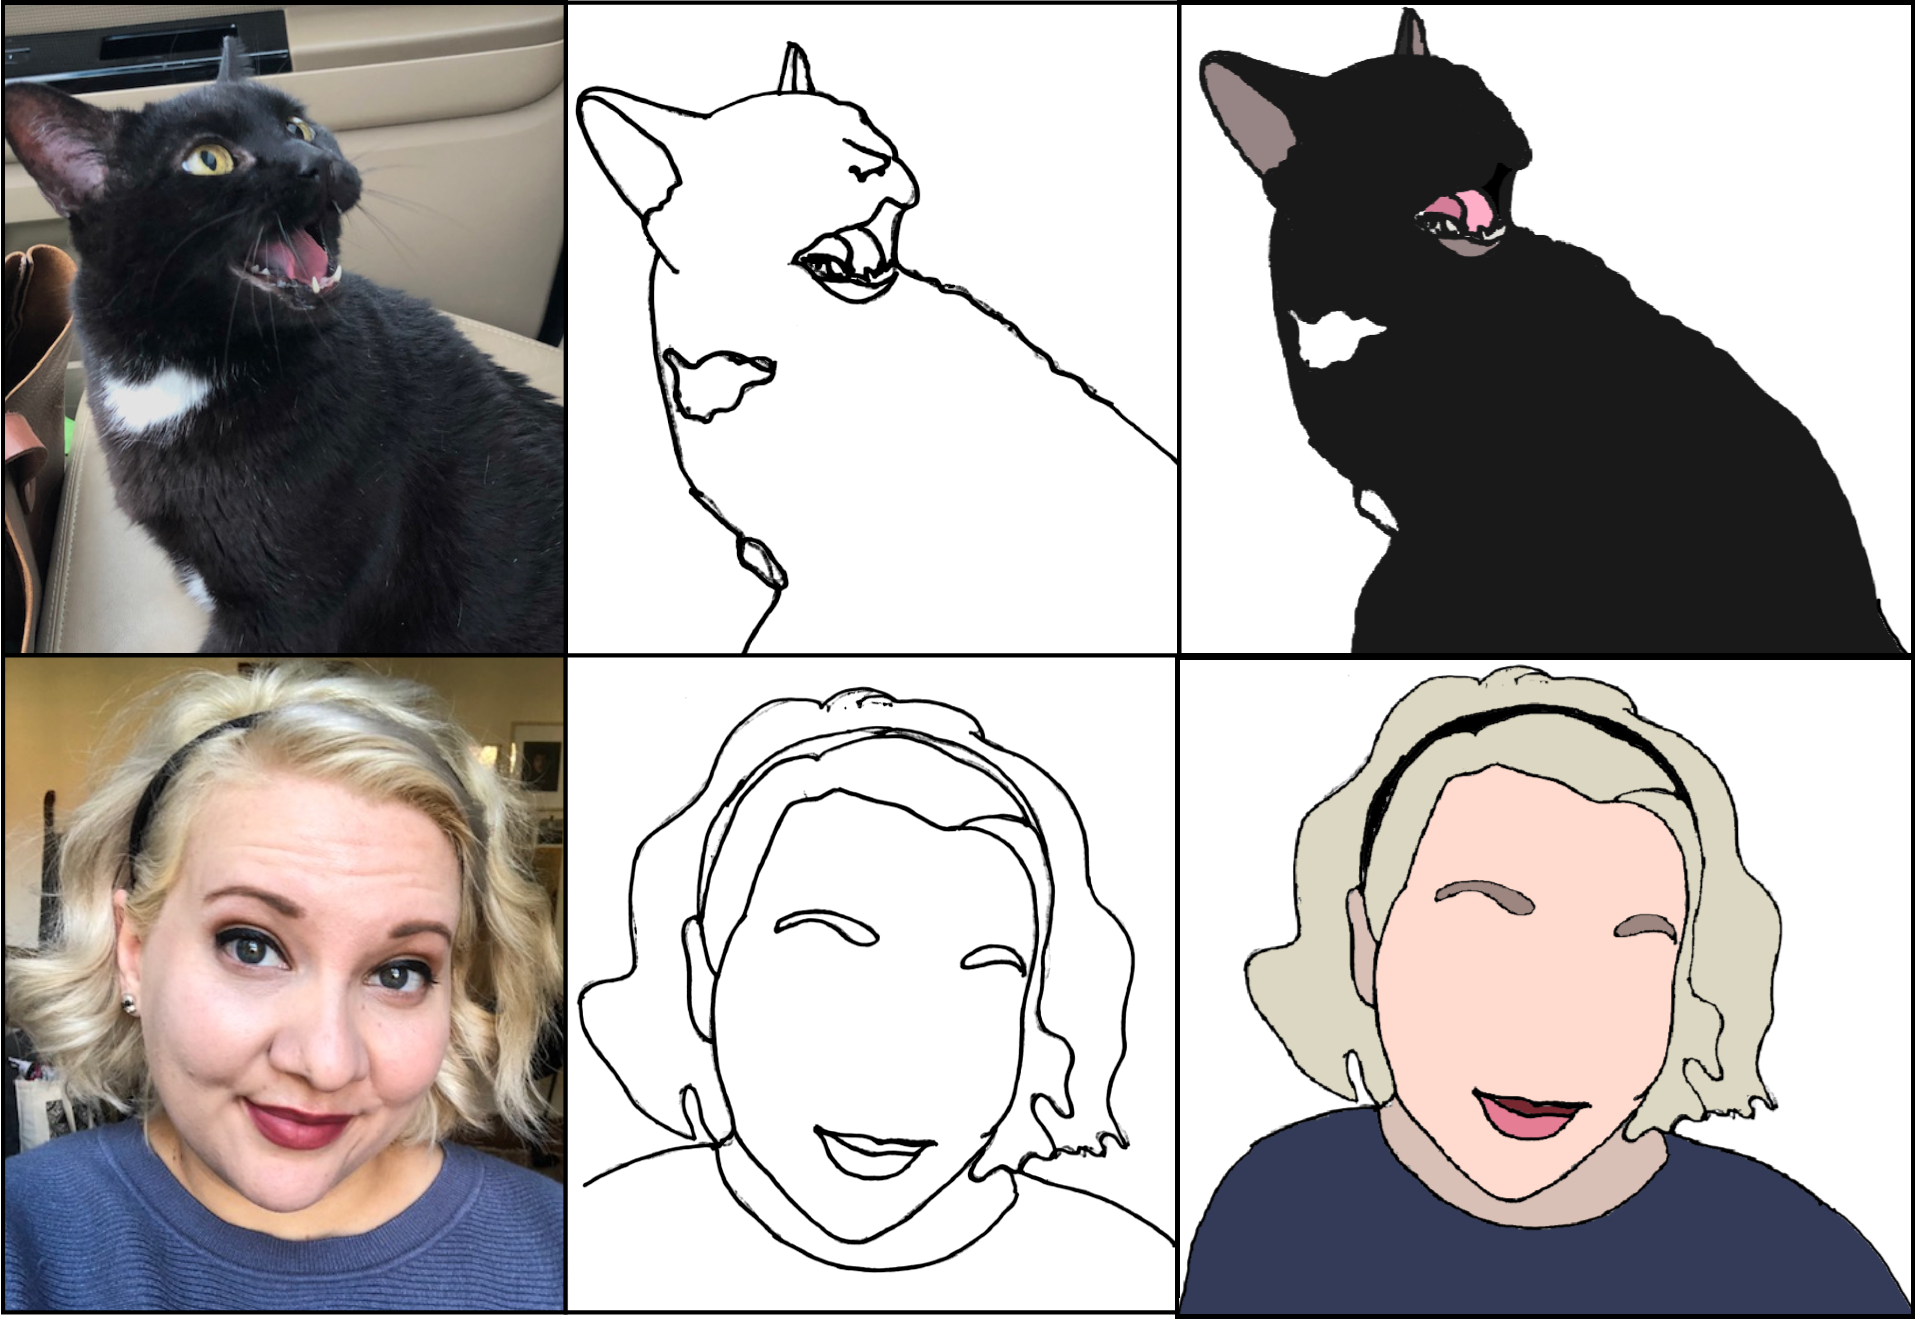 An image comprised of two rows and three columns. The first column contains a photograph of a cat and a blonde woman. The  middle column has a black outline of the same cat and woman. The final column shows the cat and woman as a color block illustration.